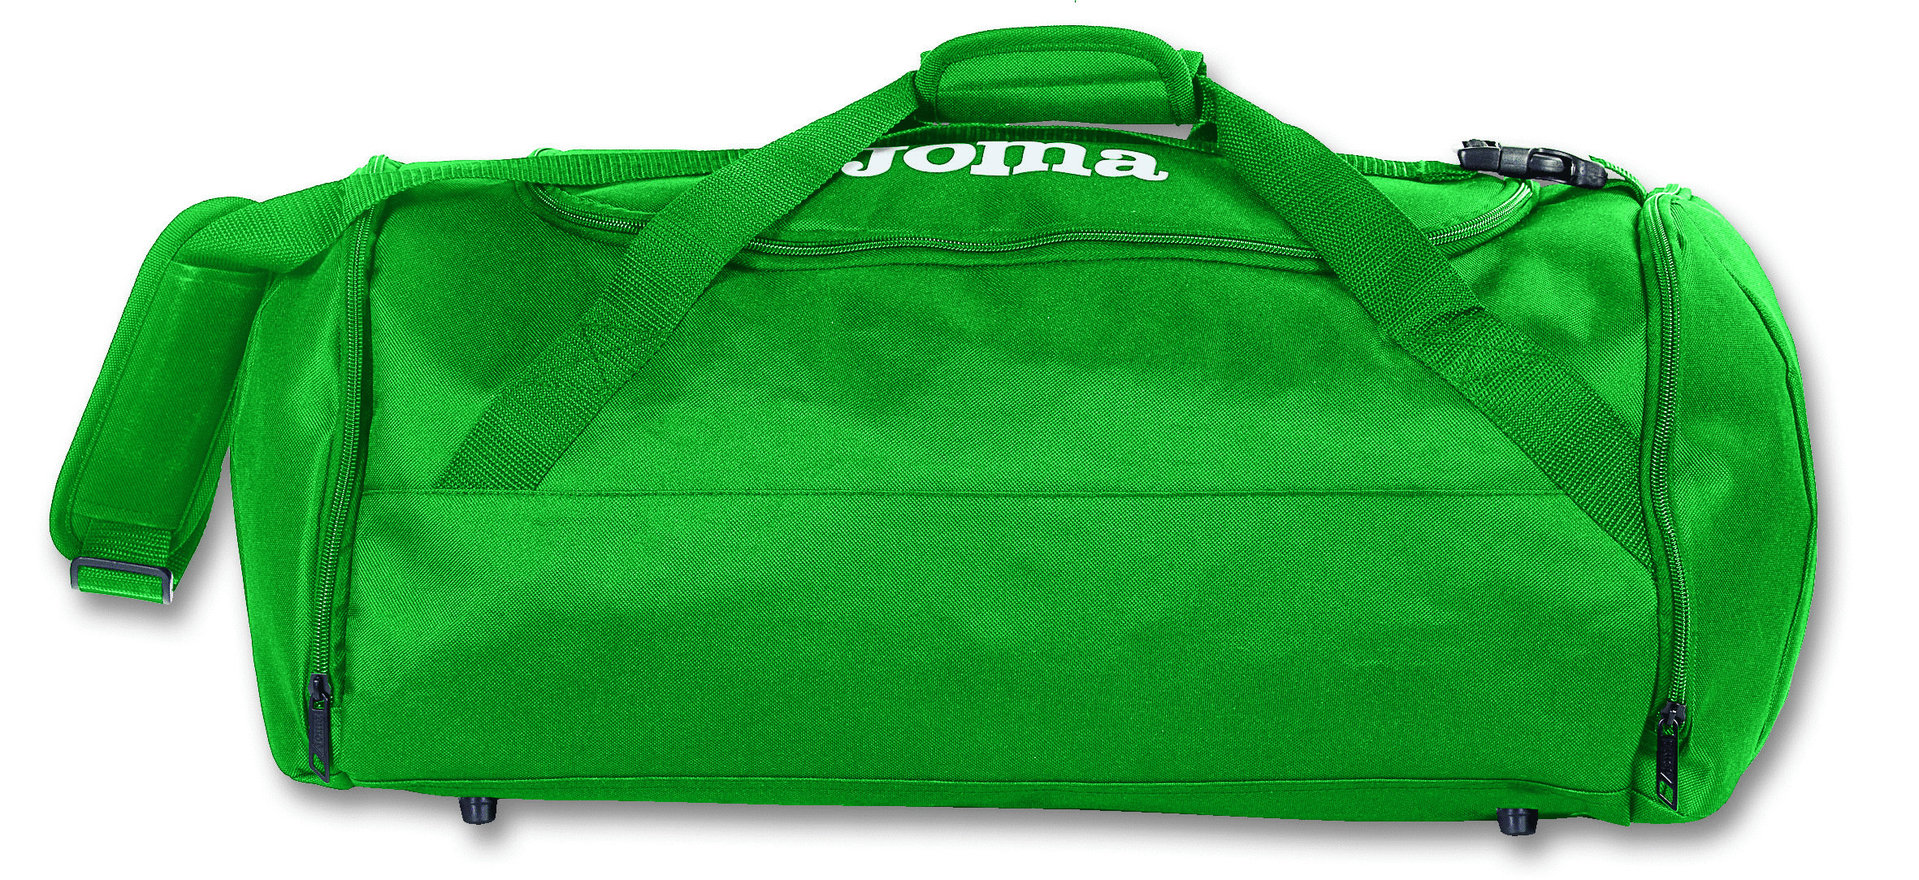 8a11812807 Joma Travel Bag - GB Kits